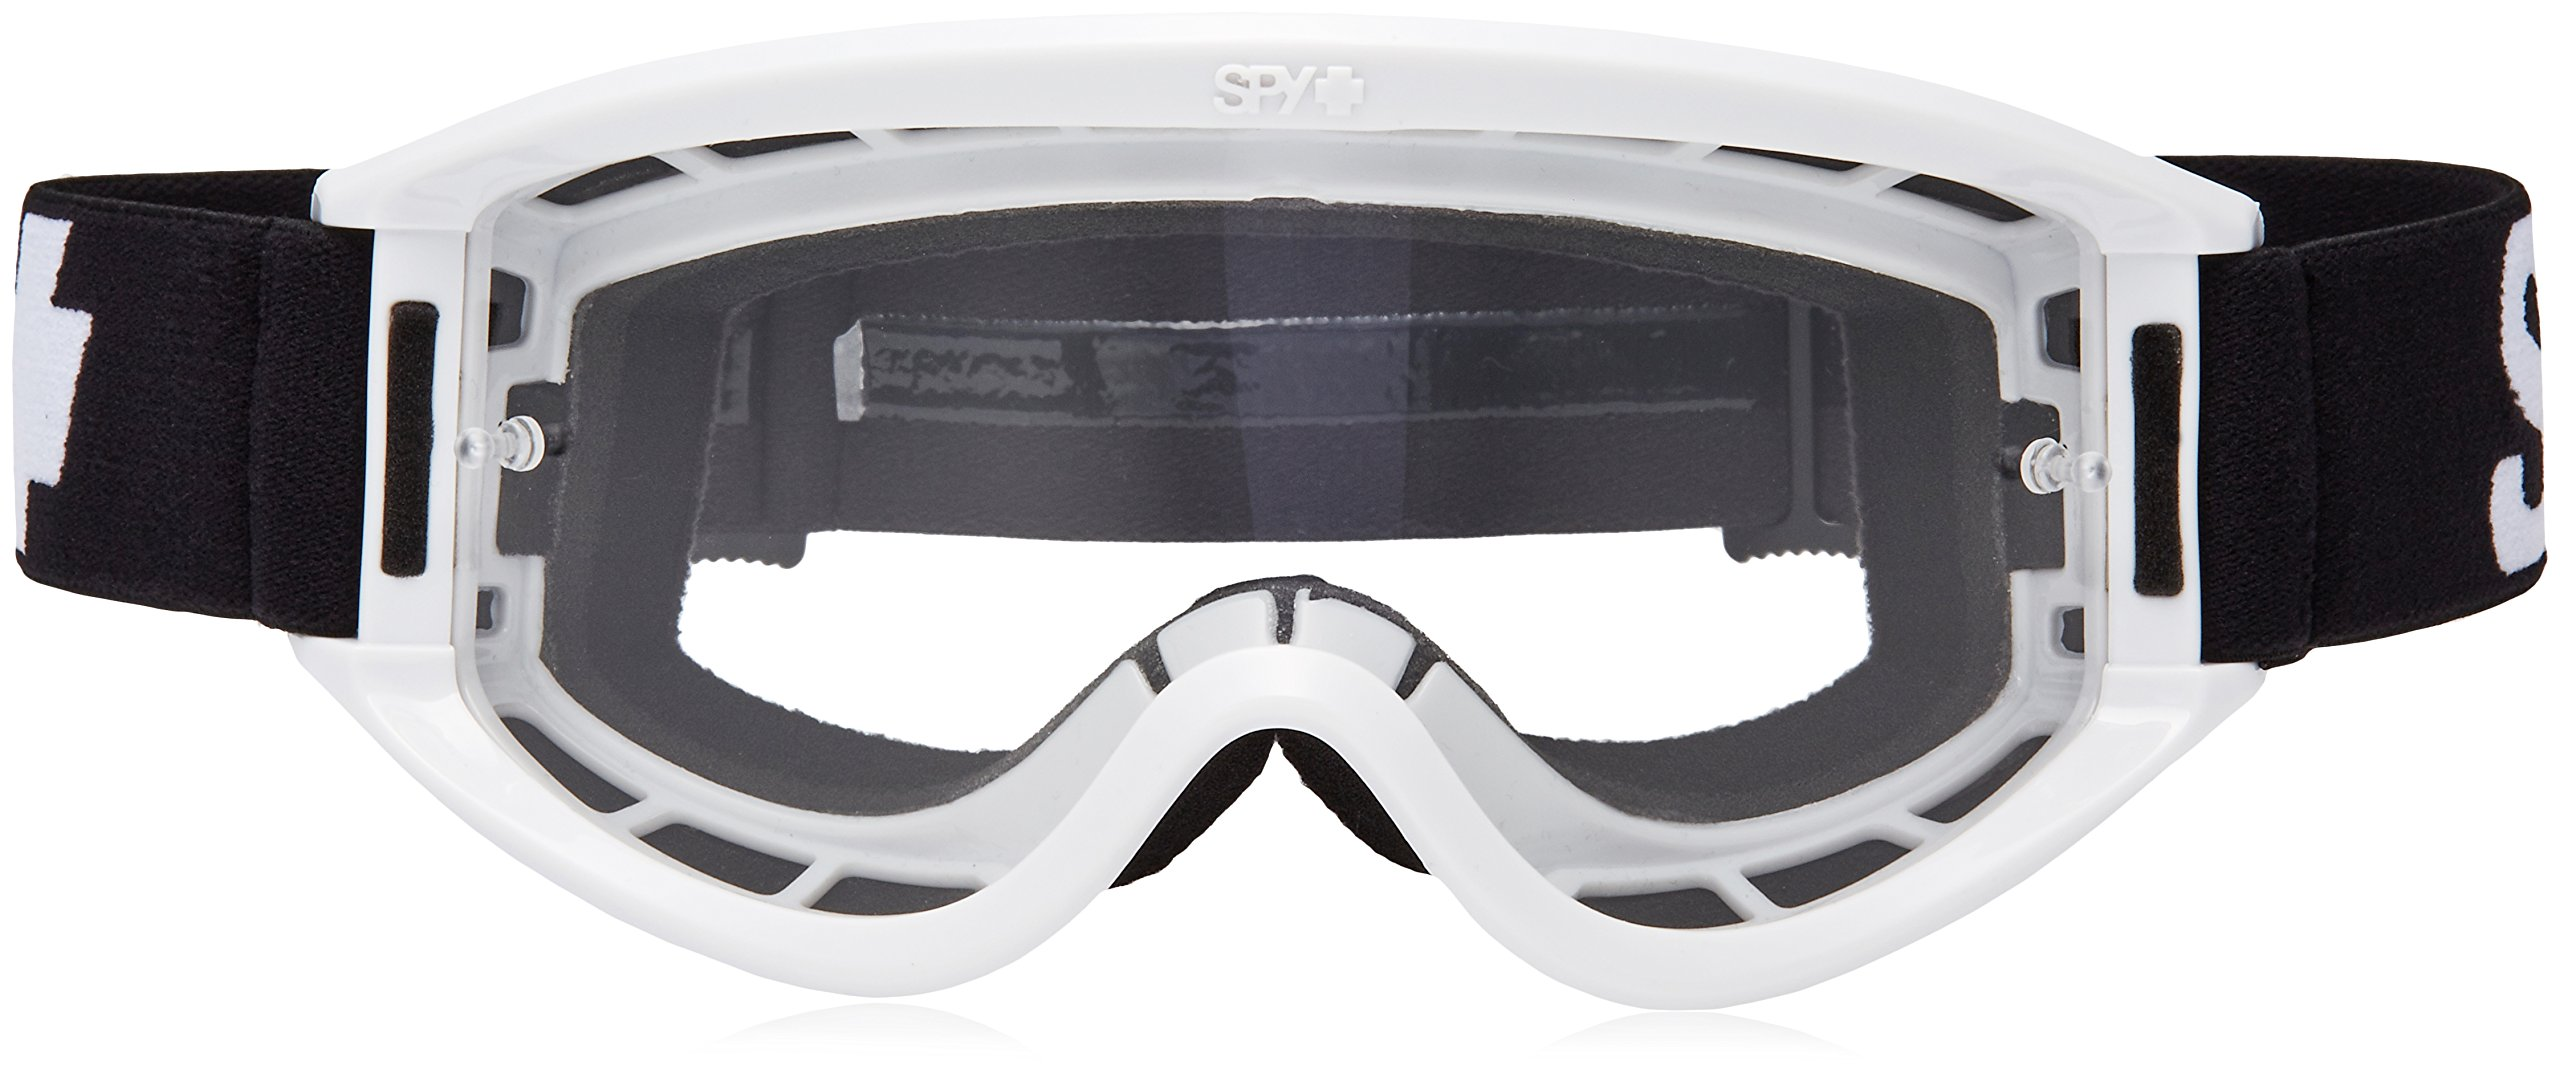 SPY Optic Breakaway Motocross Goggles | Midsize Perfect for All Face Sizes by Spy (Image #2)